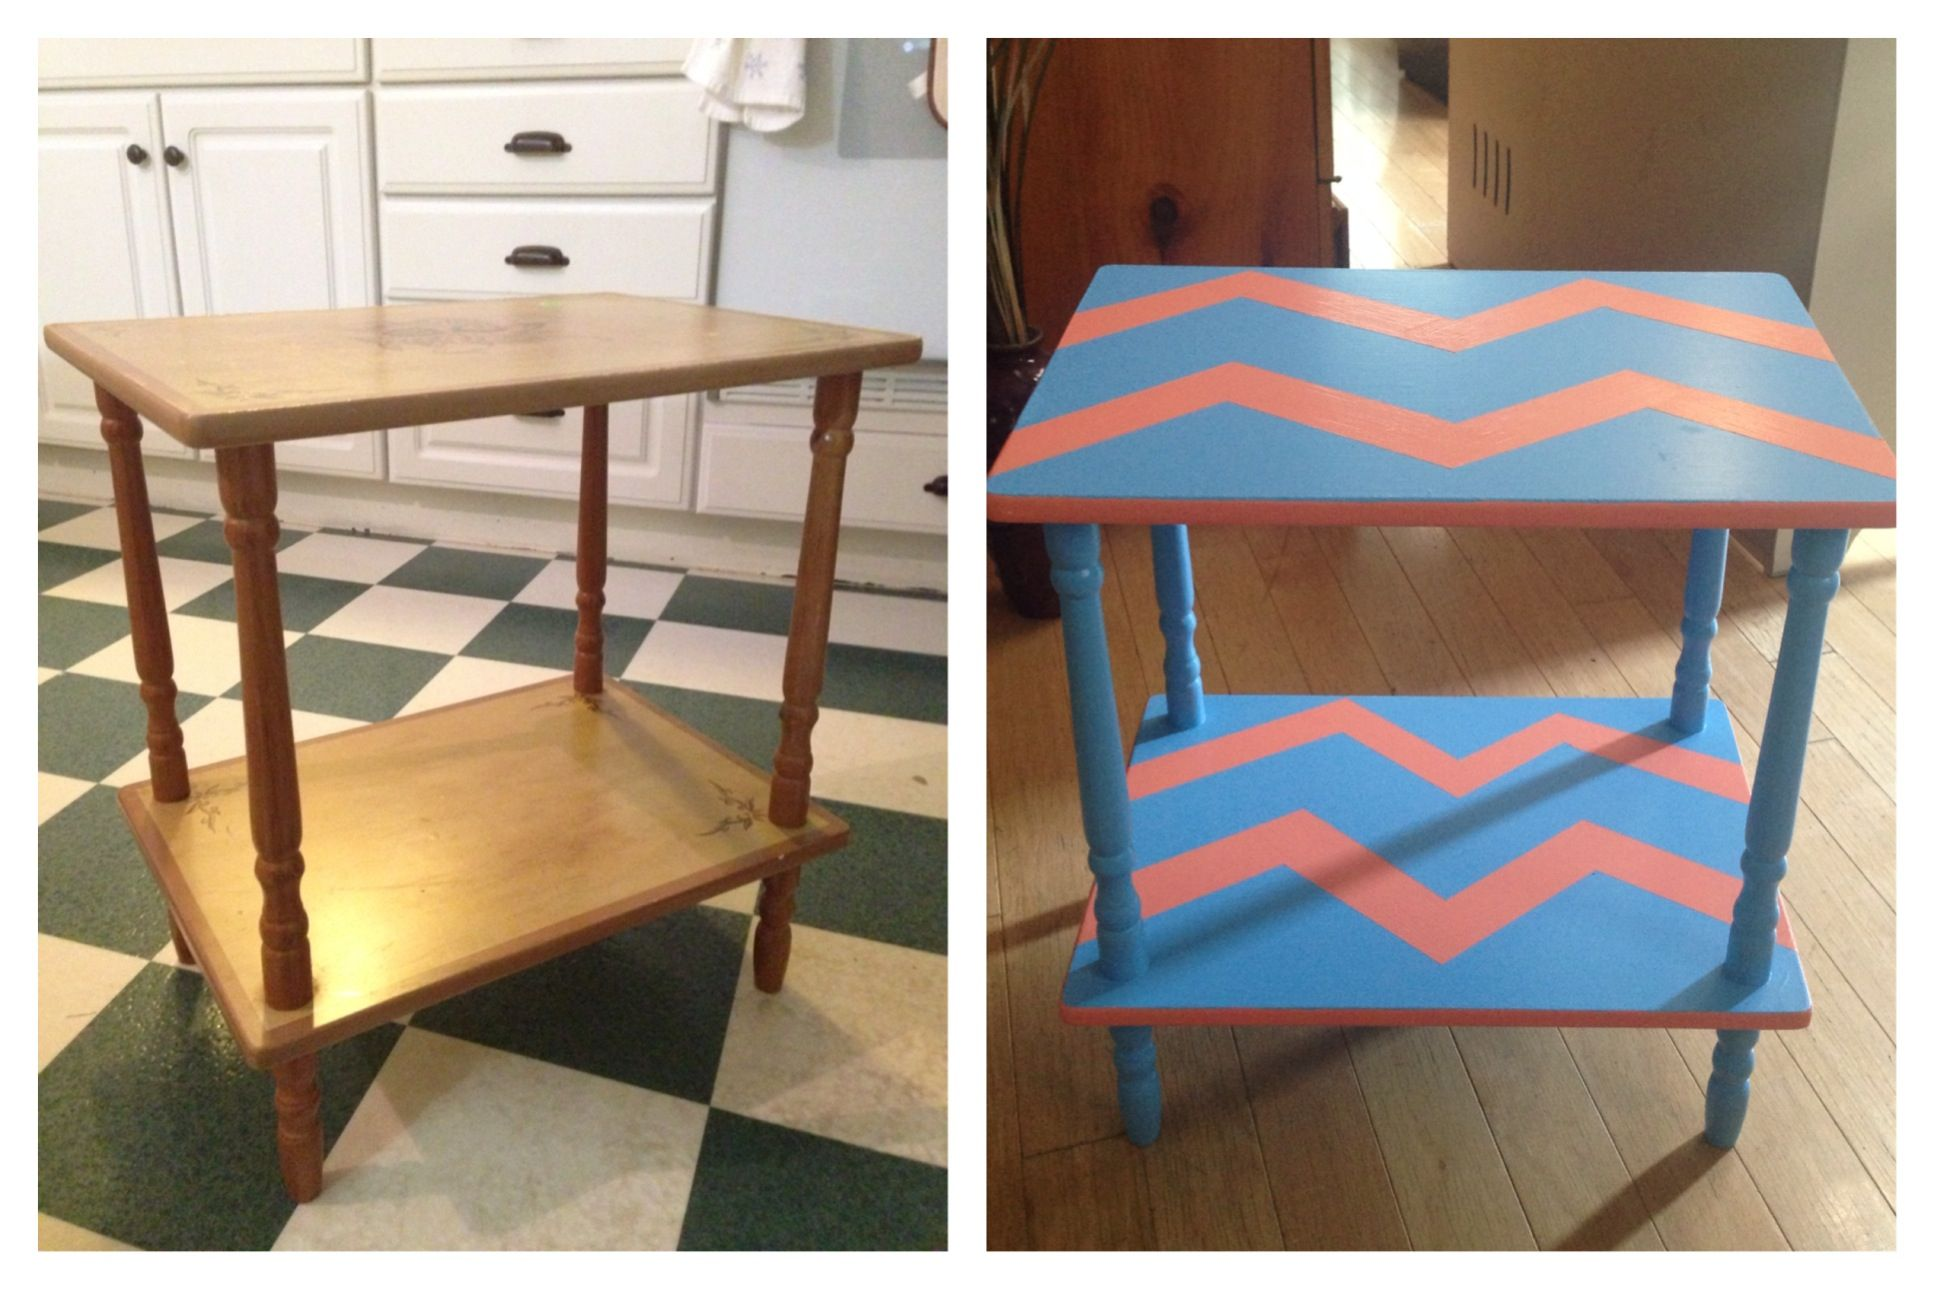 Before and after $5 garage sale table!